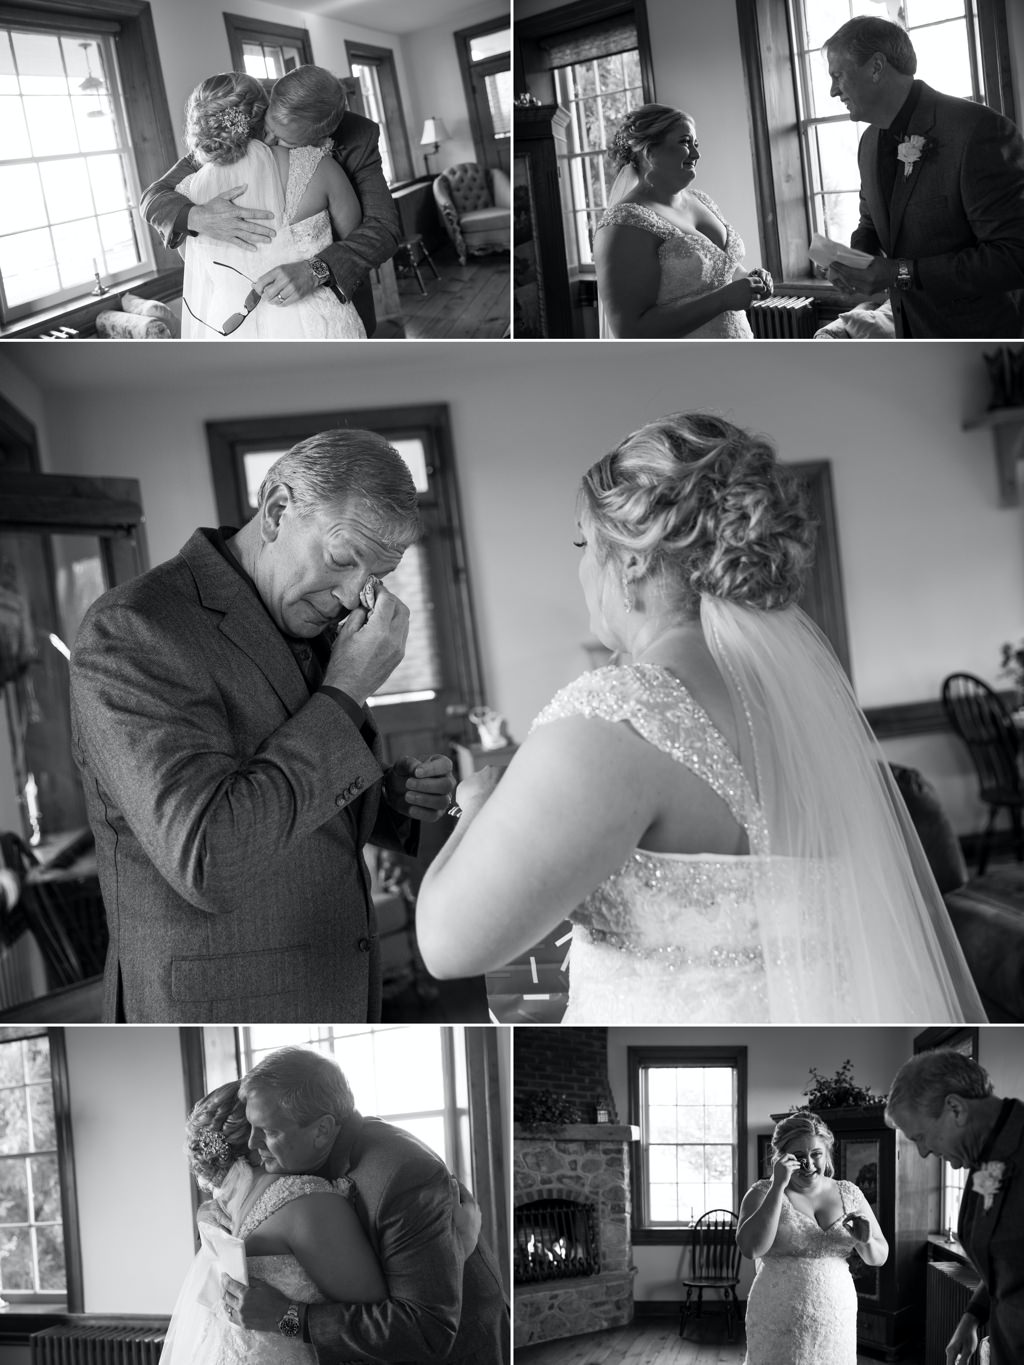 a dad and bride crying after seeing each other for the first time on the wedding day.